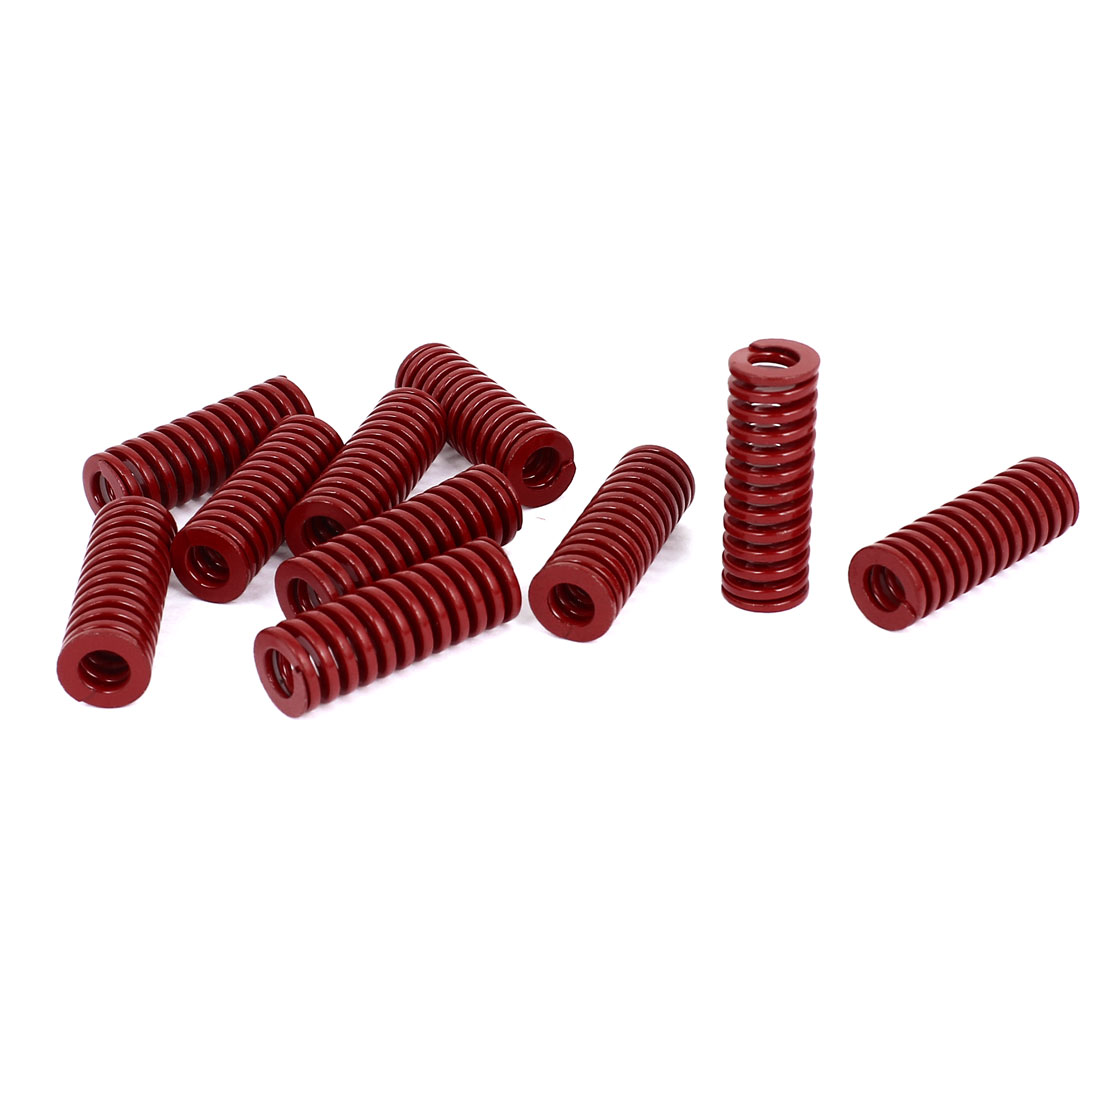 14mm OD 40mm Long Medium Load Stamping Compression Mold Die Spring Red 10pcs